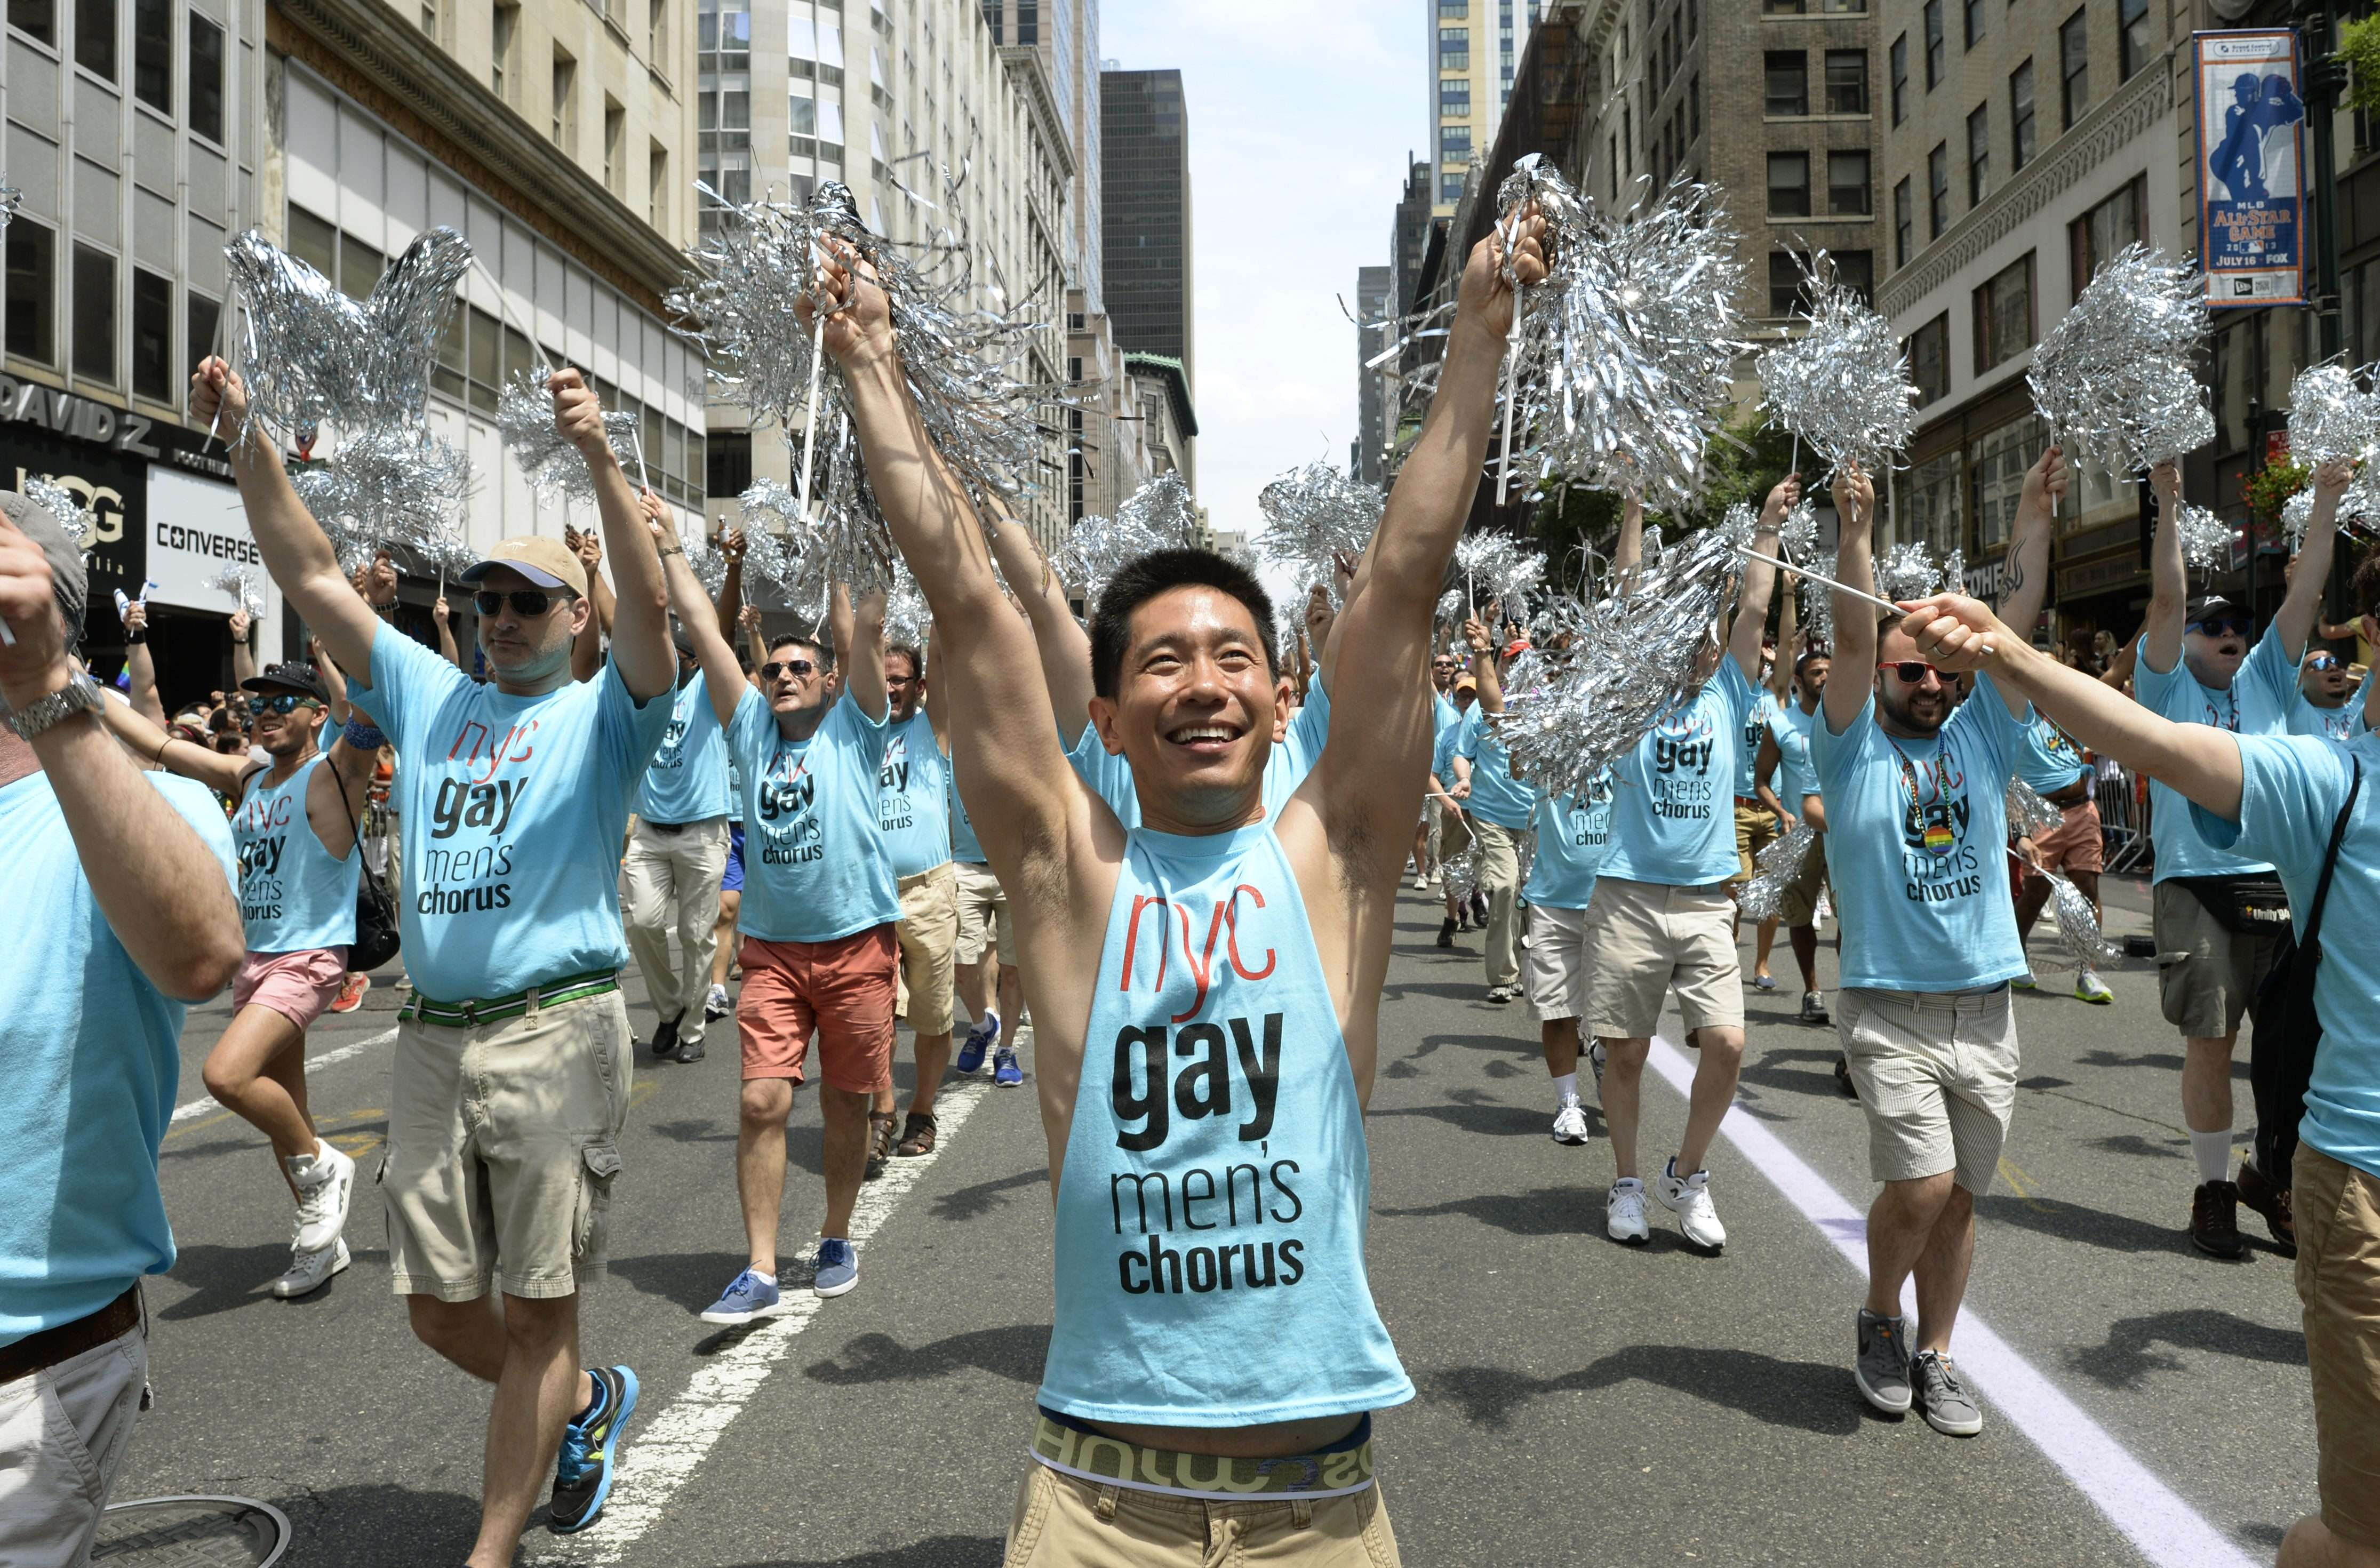 New York City is where the first pride march was held 44 years ago to mark the one-year anniversary of the Stonewall Inn riots that kicked off the modern gay rights movement.